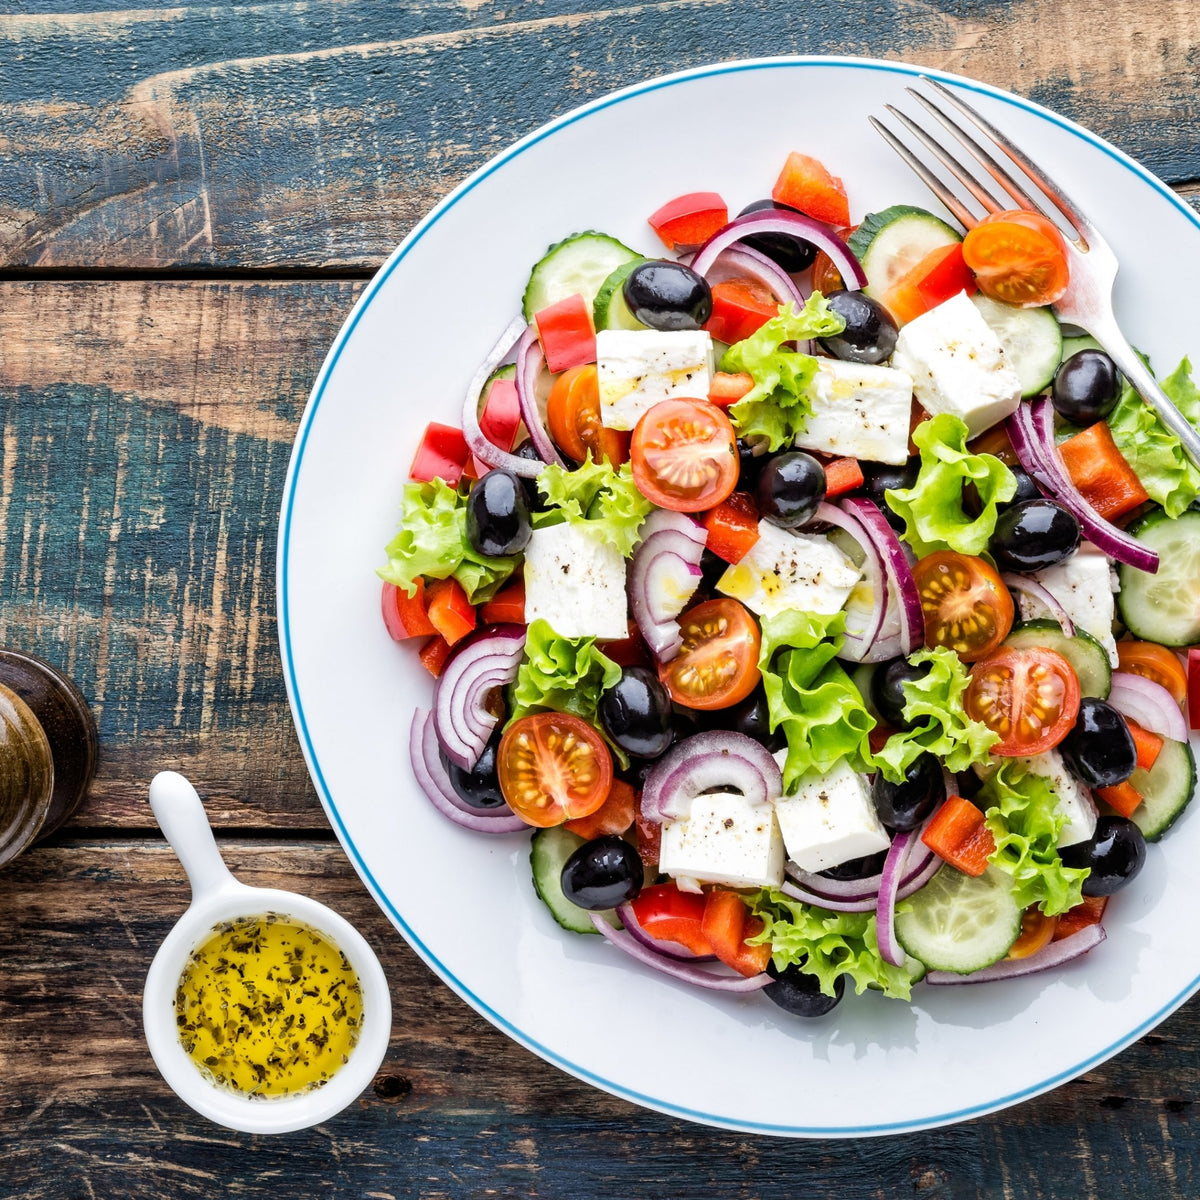 3 classic salad dressings with olive oil that everyone should try | Marqt.no